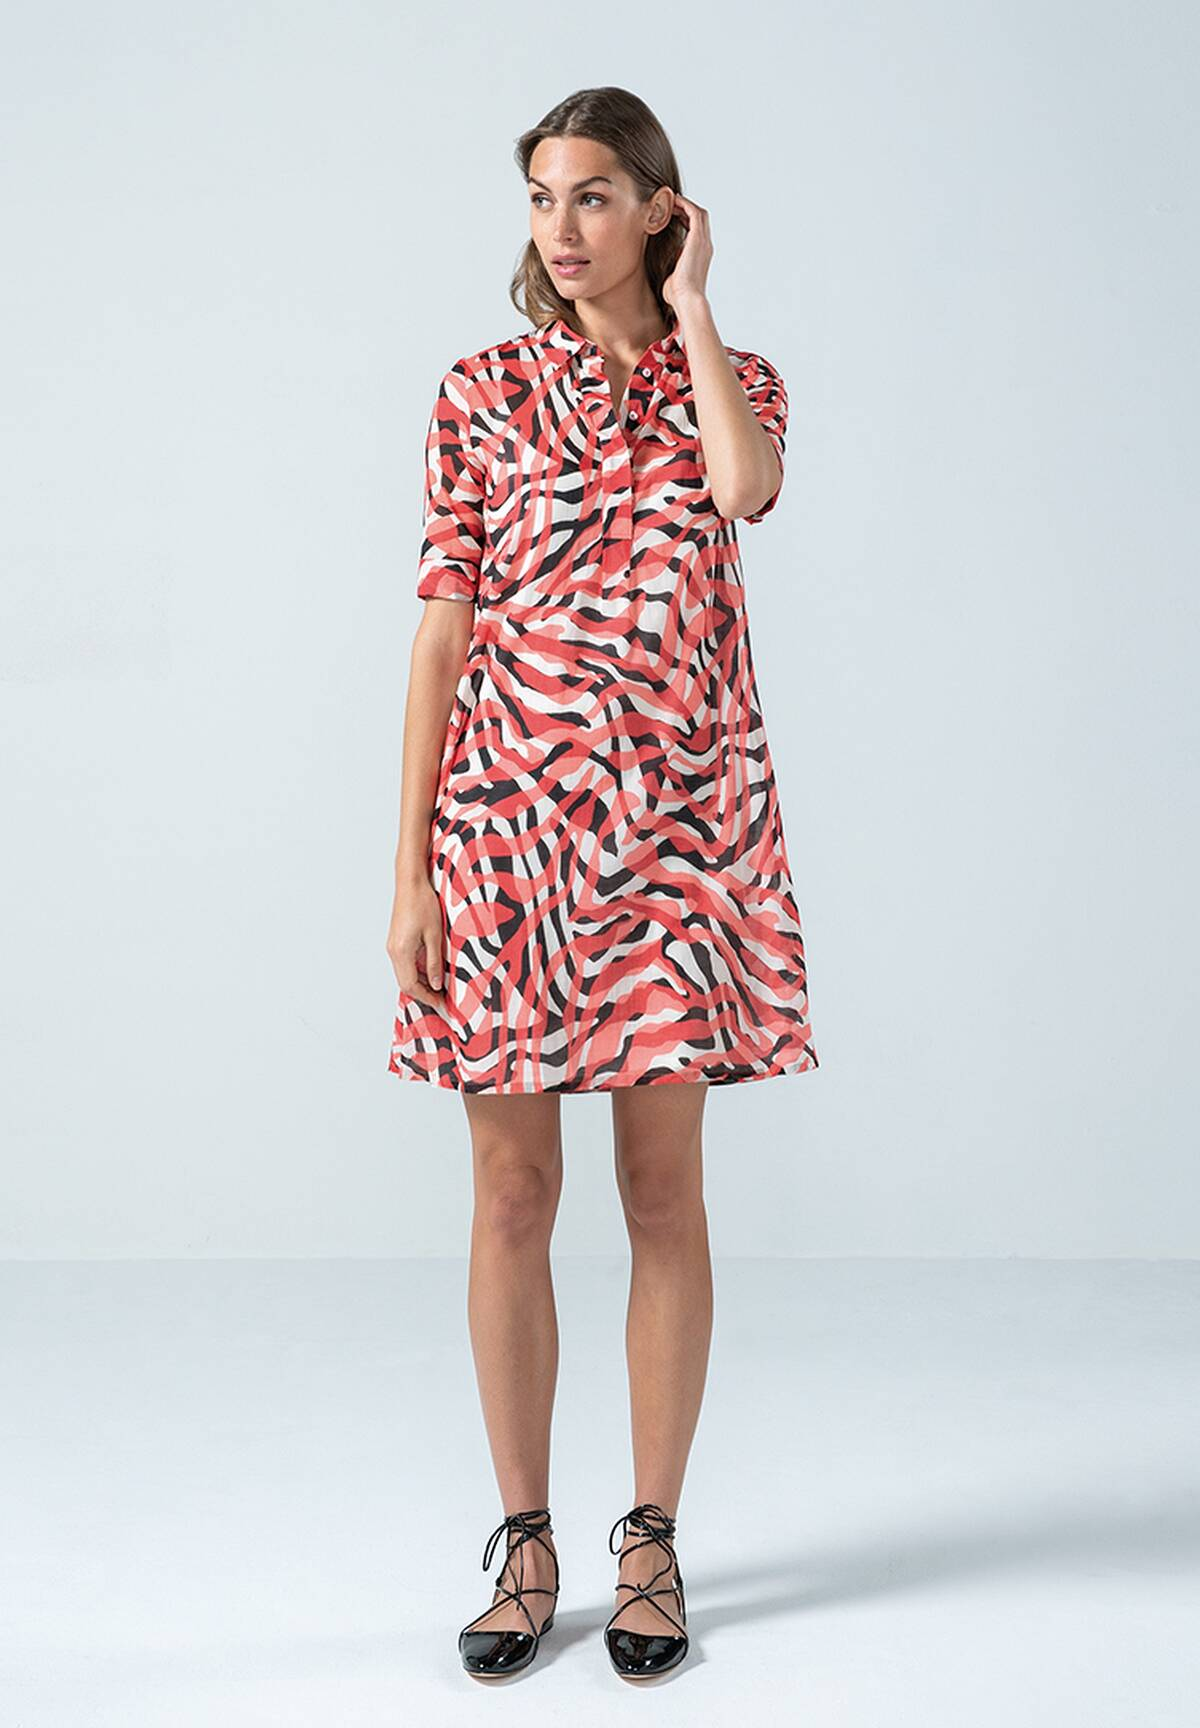 Sommerliches Blusenkleid mit Animalprint / Blouse Dress